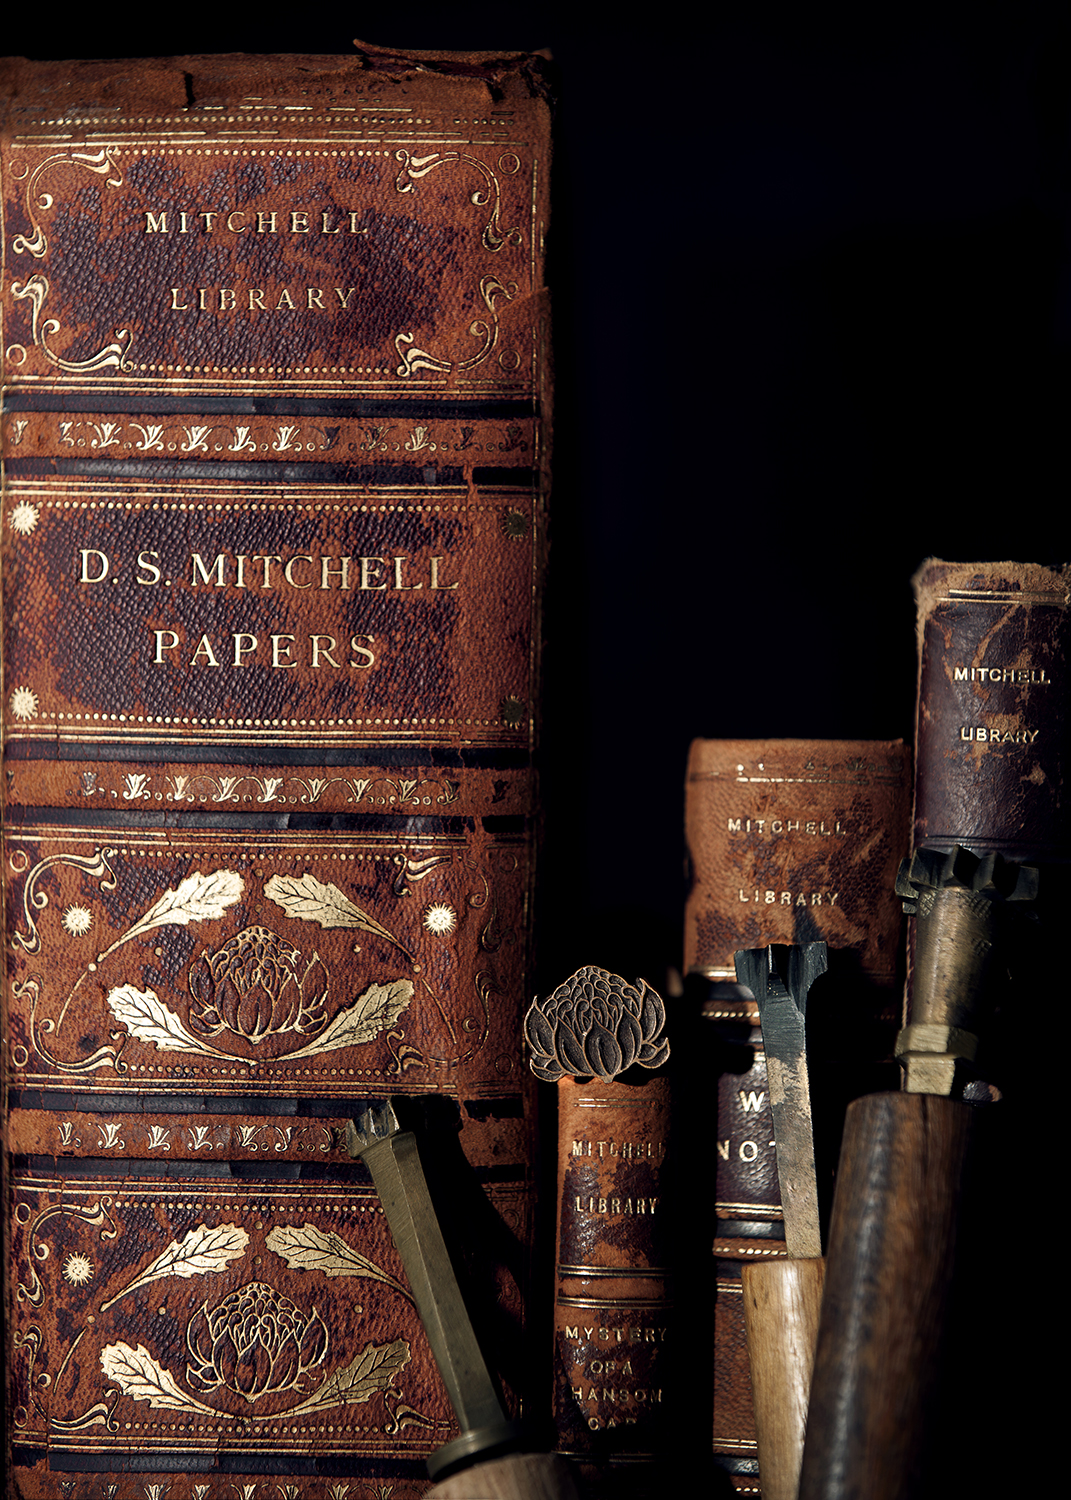 The spines of old books with gold waratah imprints are shown alongside the metal binding tools that created the impressions.